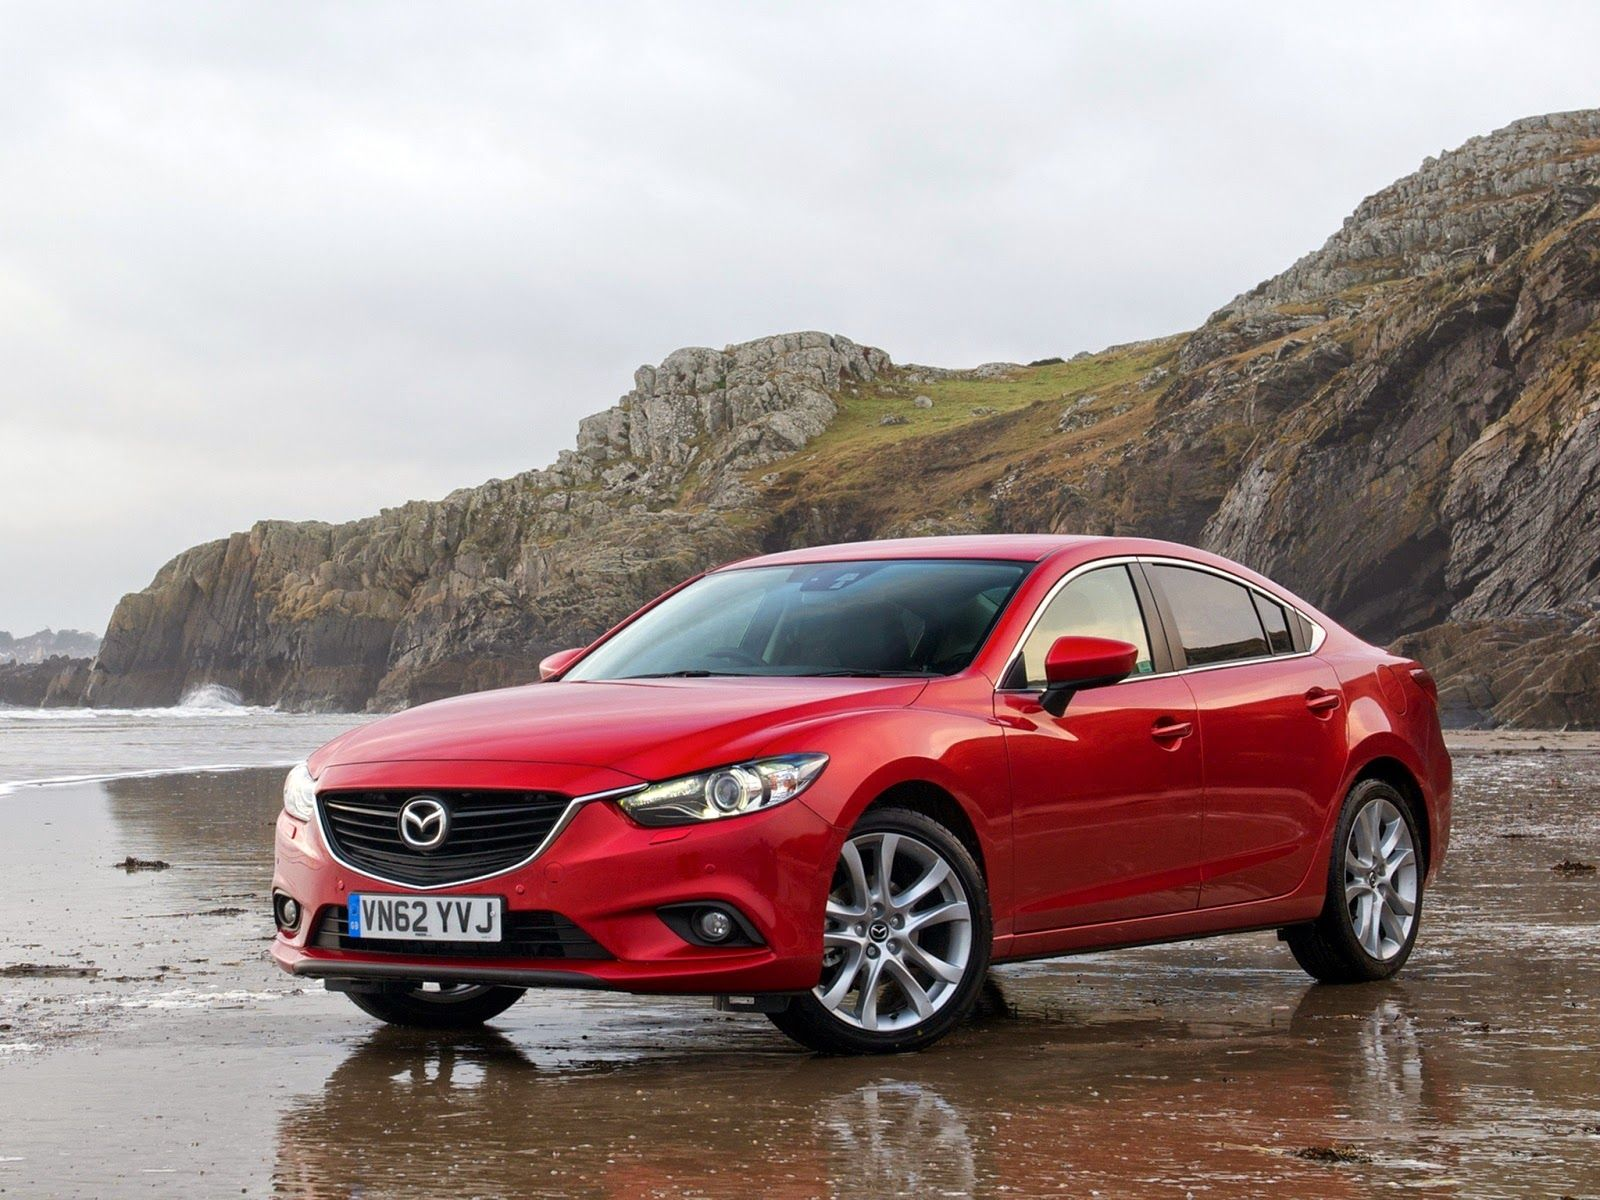 26 3rd Gen Mazda 6 Saloon Styled To Stand Out Auto Review Mazda 6 Coupe Mazda Mazda 6